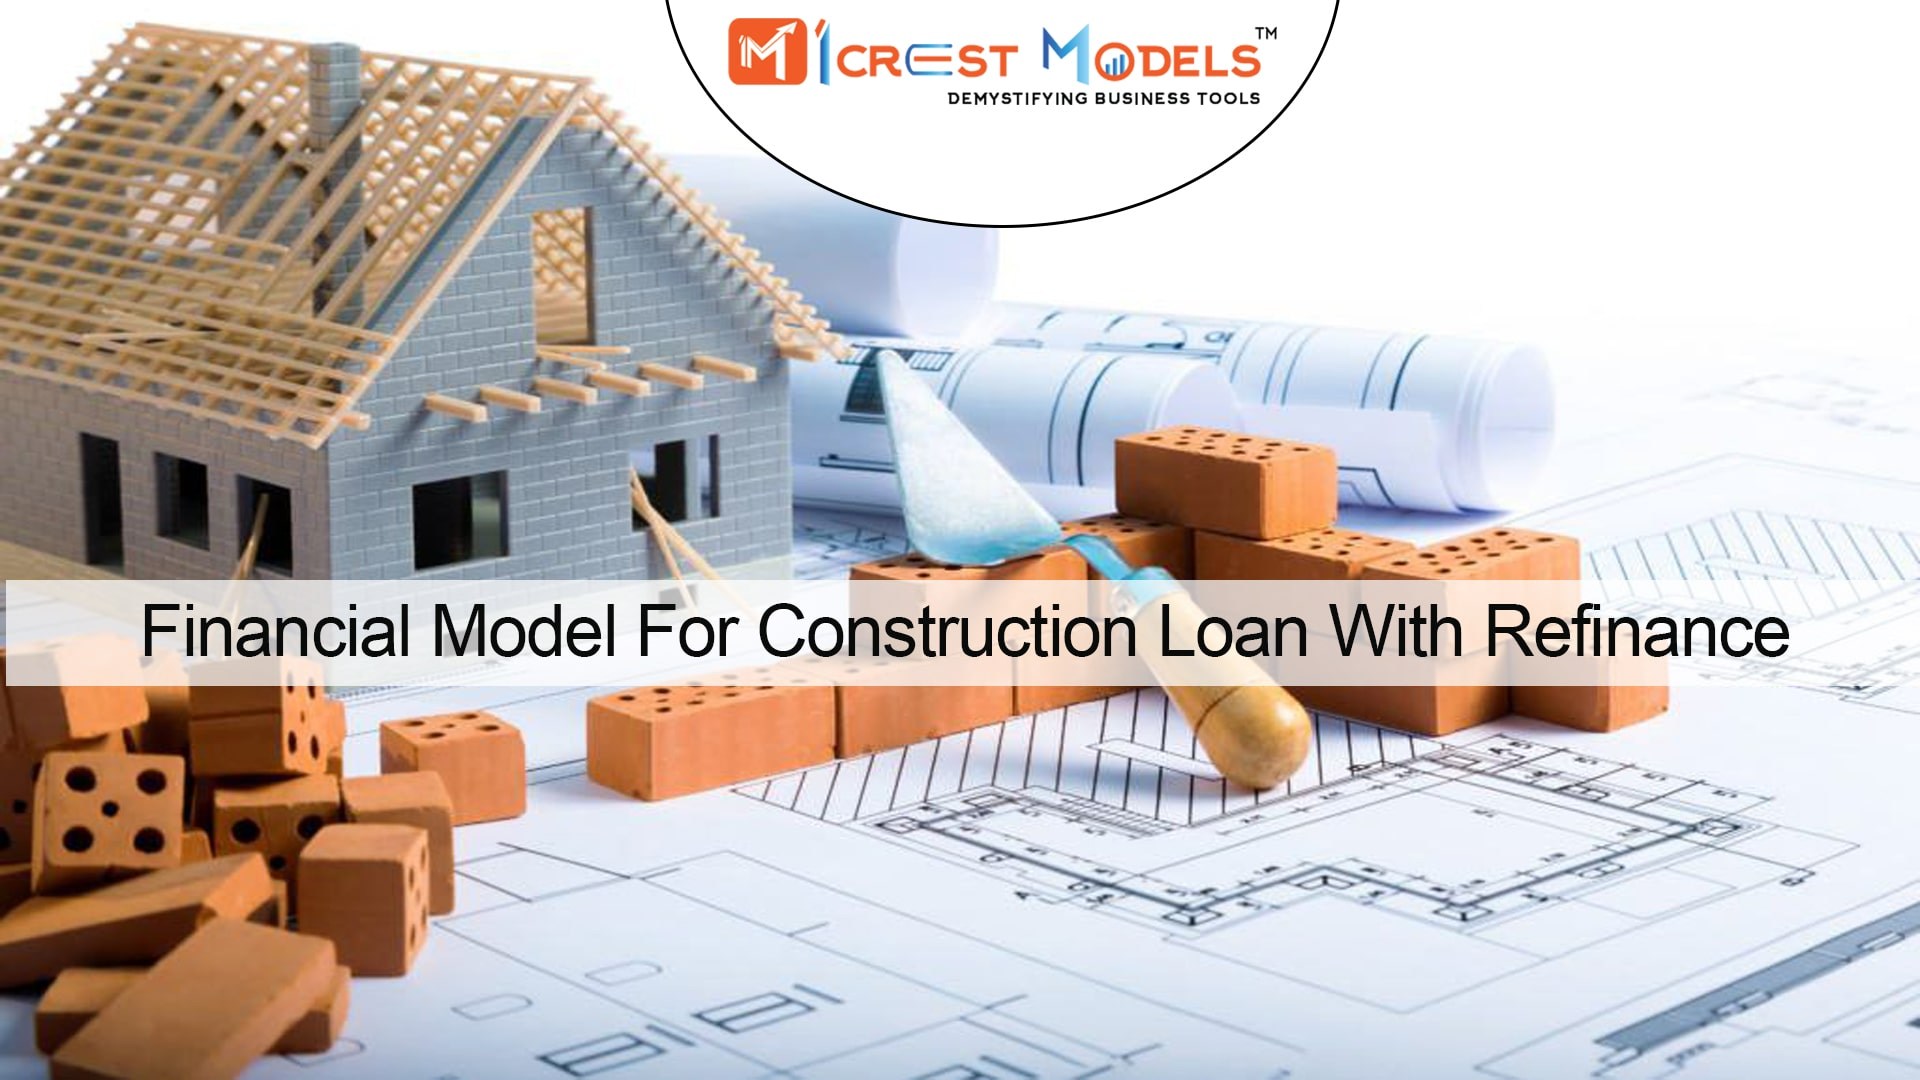 Financial Model For Construction Loan With Refinance